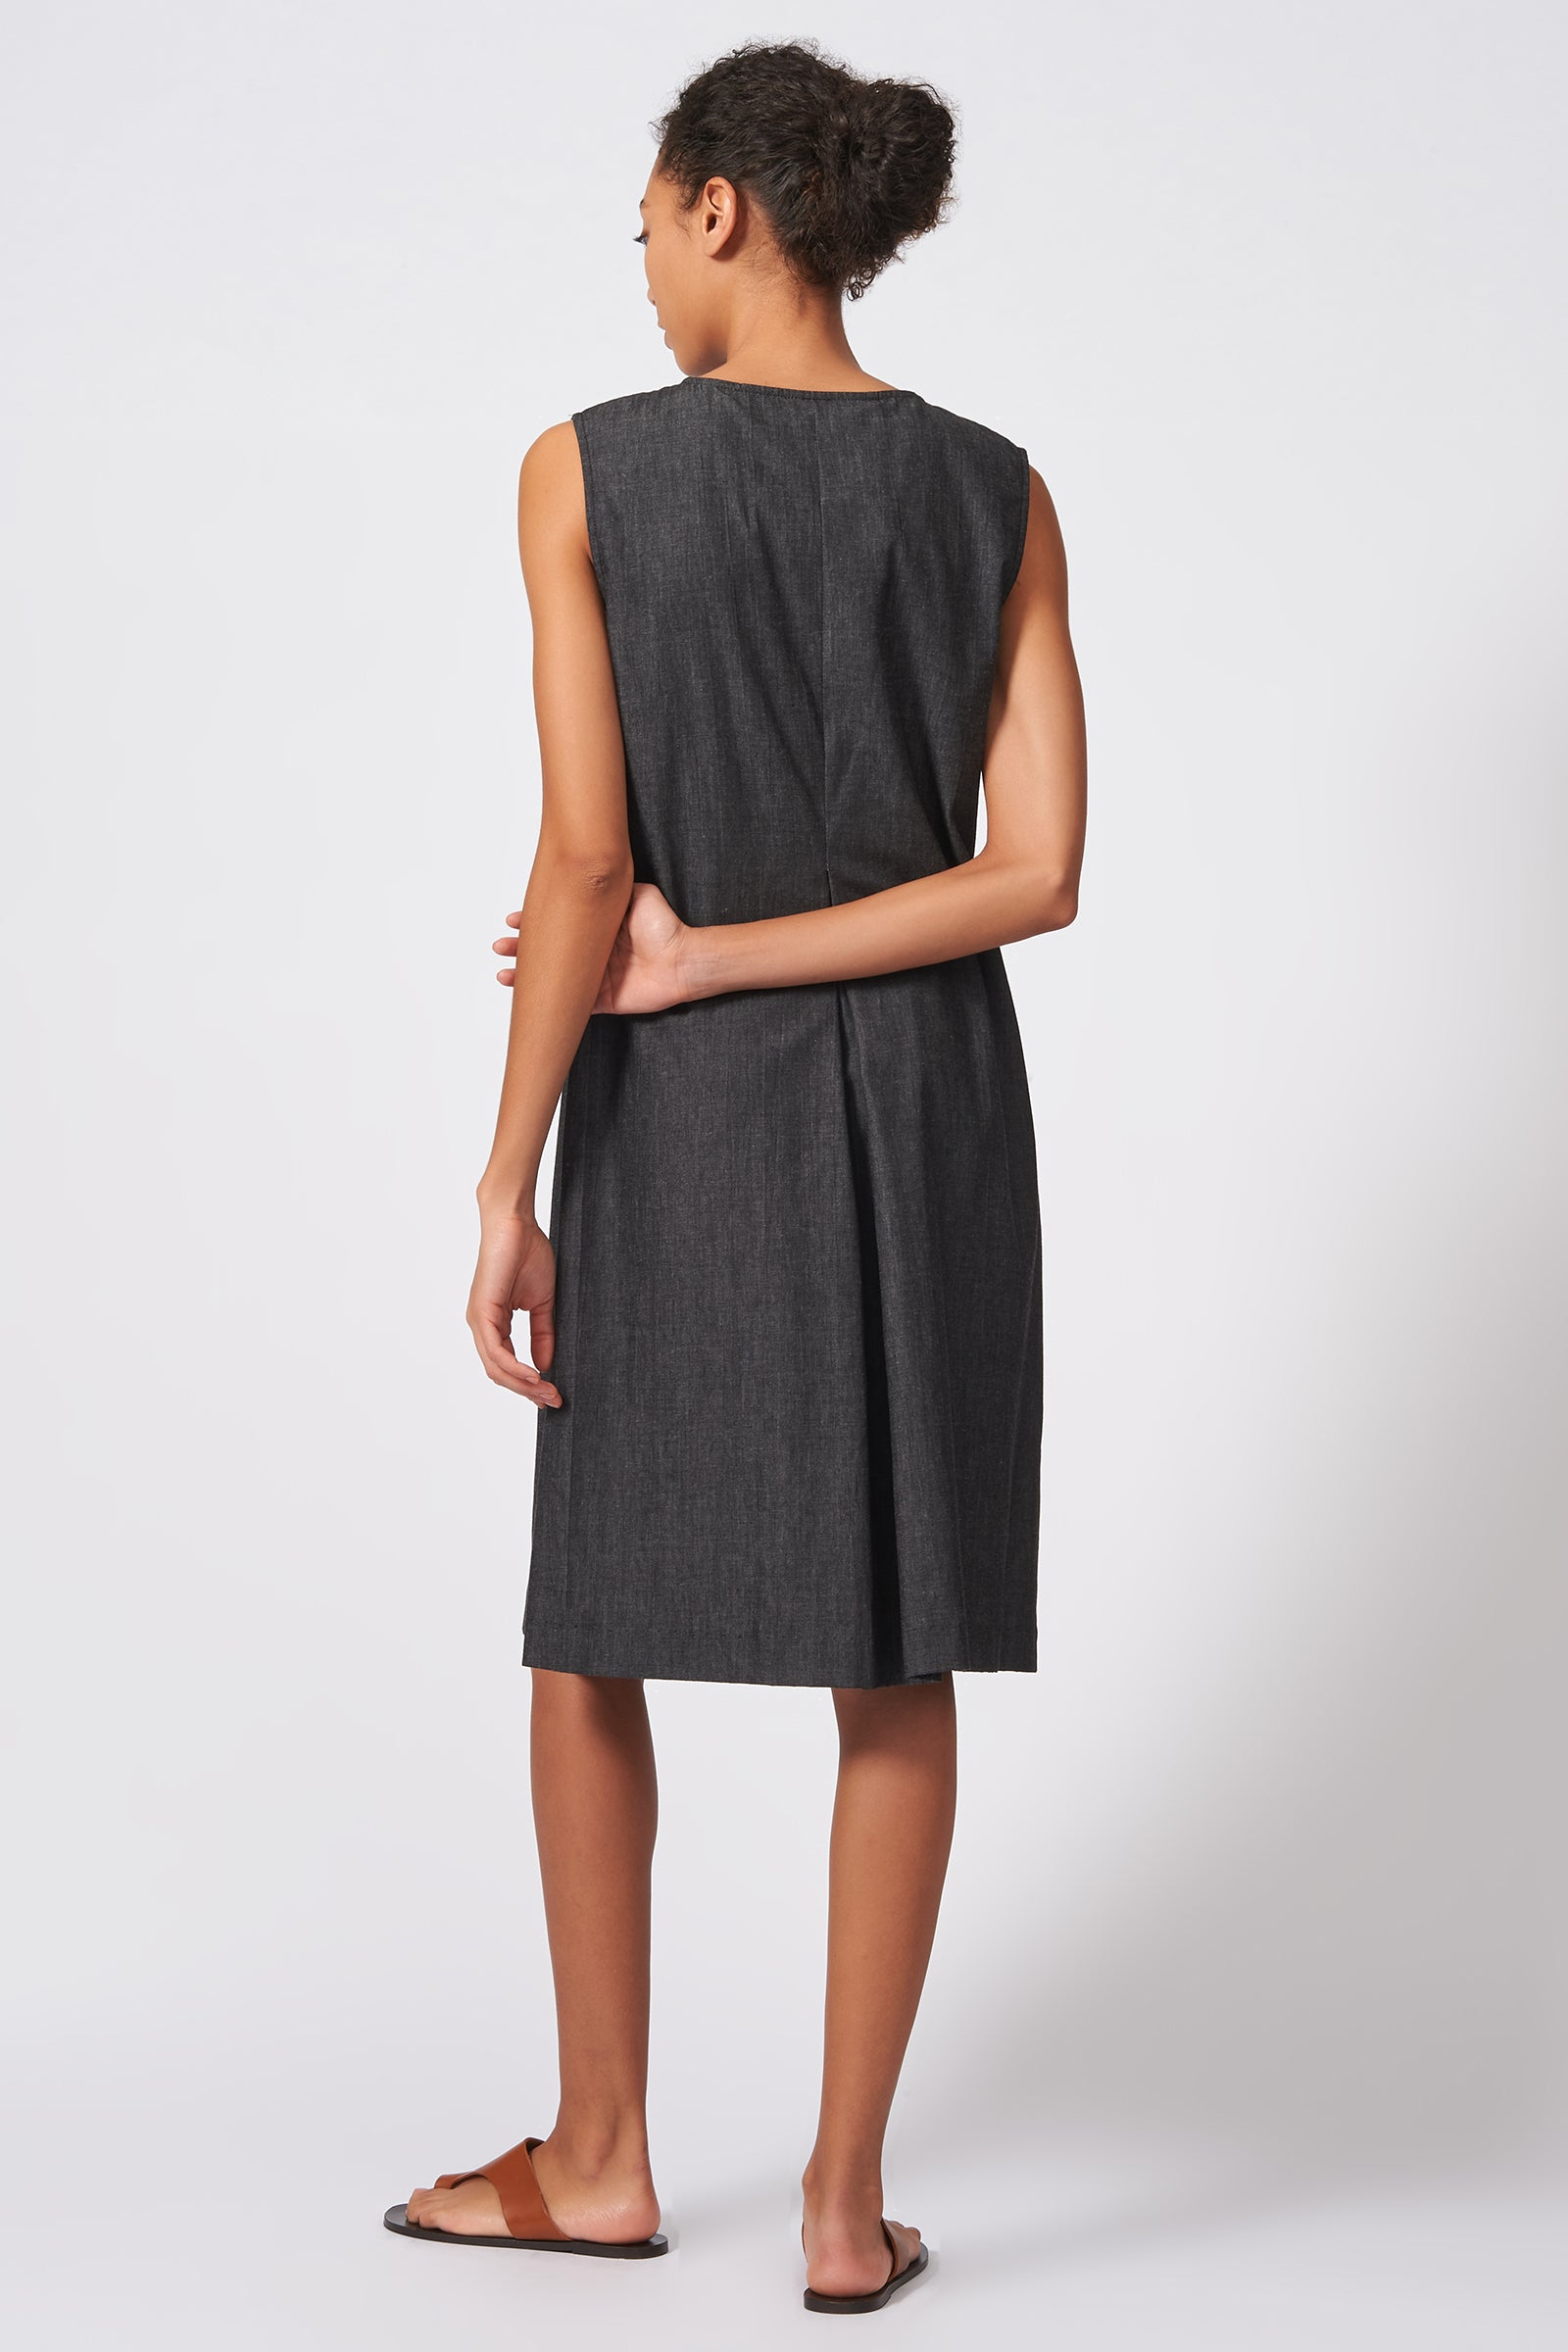 Kal Rieman Pleat Front Zip Dress in Dark Denim on Model Full Back View